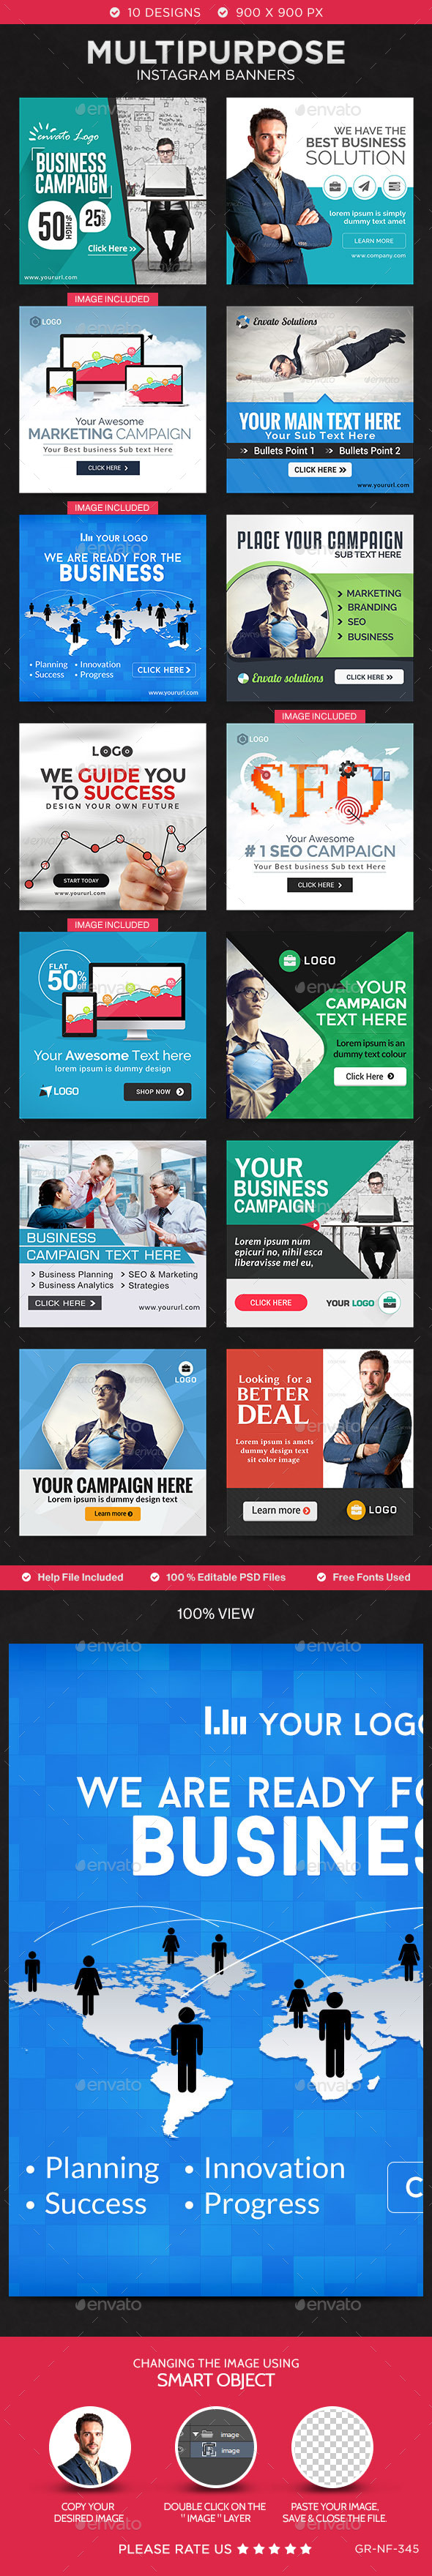 GraphicRiver Multipurpose Instagram Templates 14 Designs 11275942